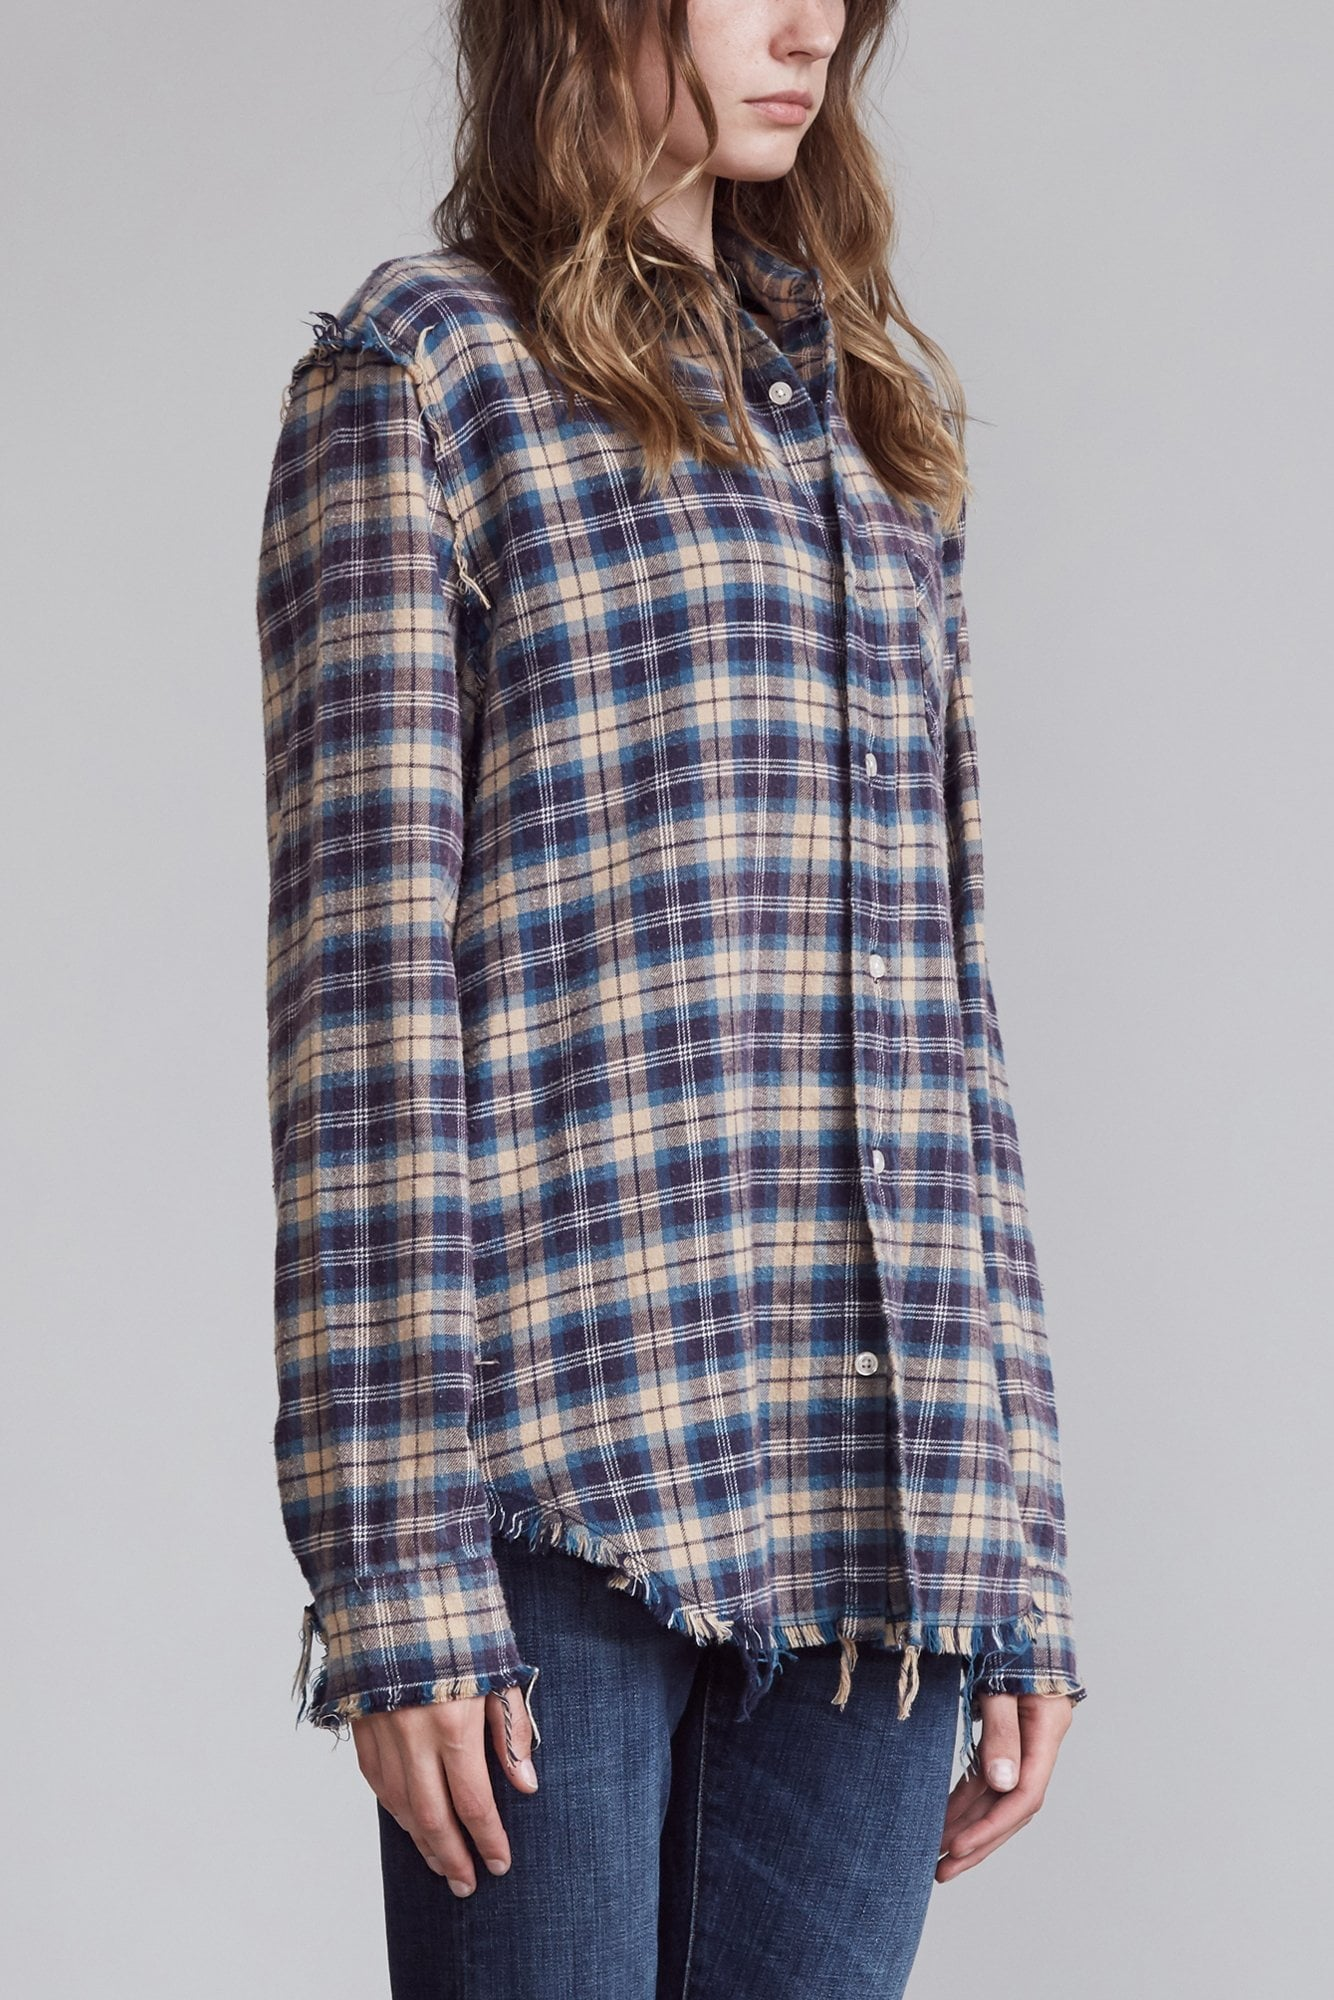 Shredded Seam Shirt - Blue and Khaki Plaid